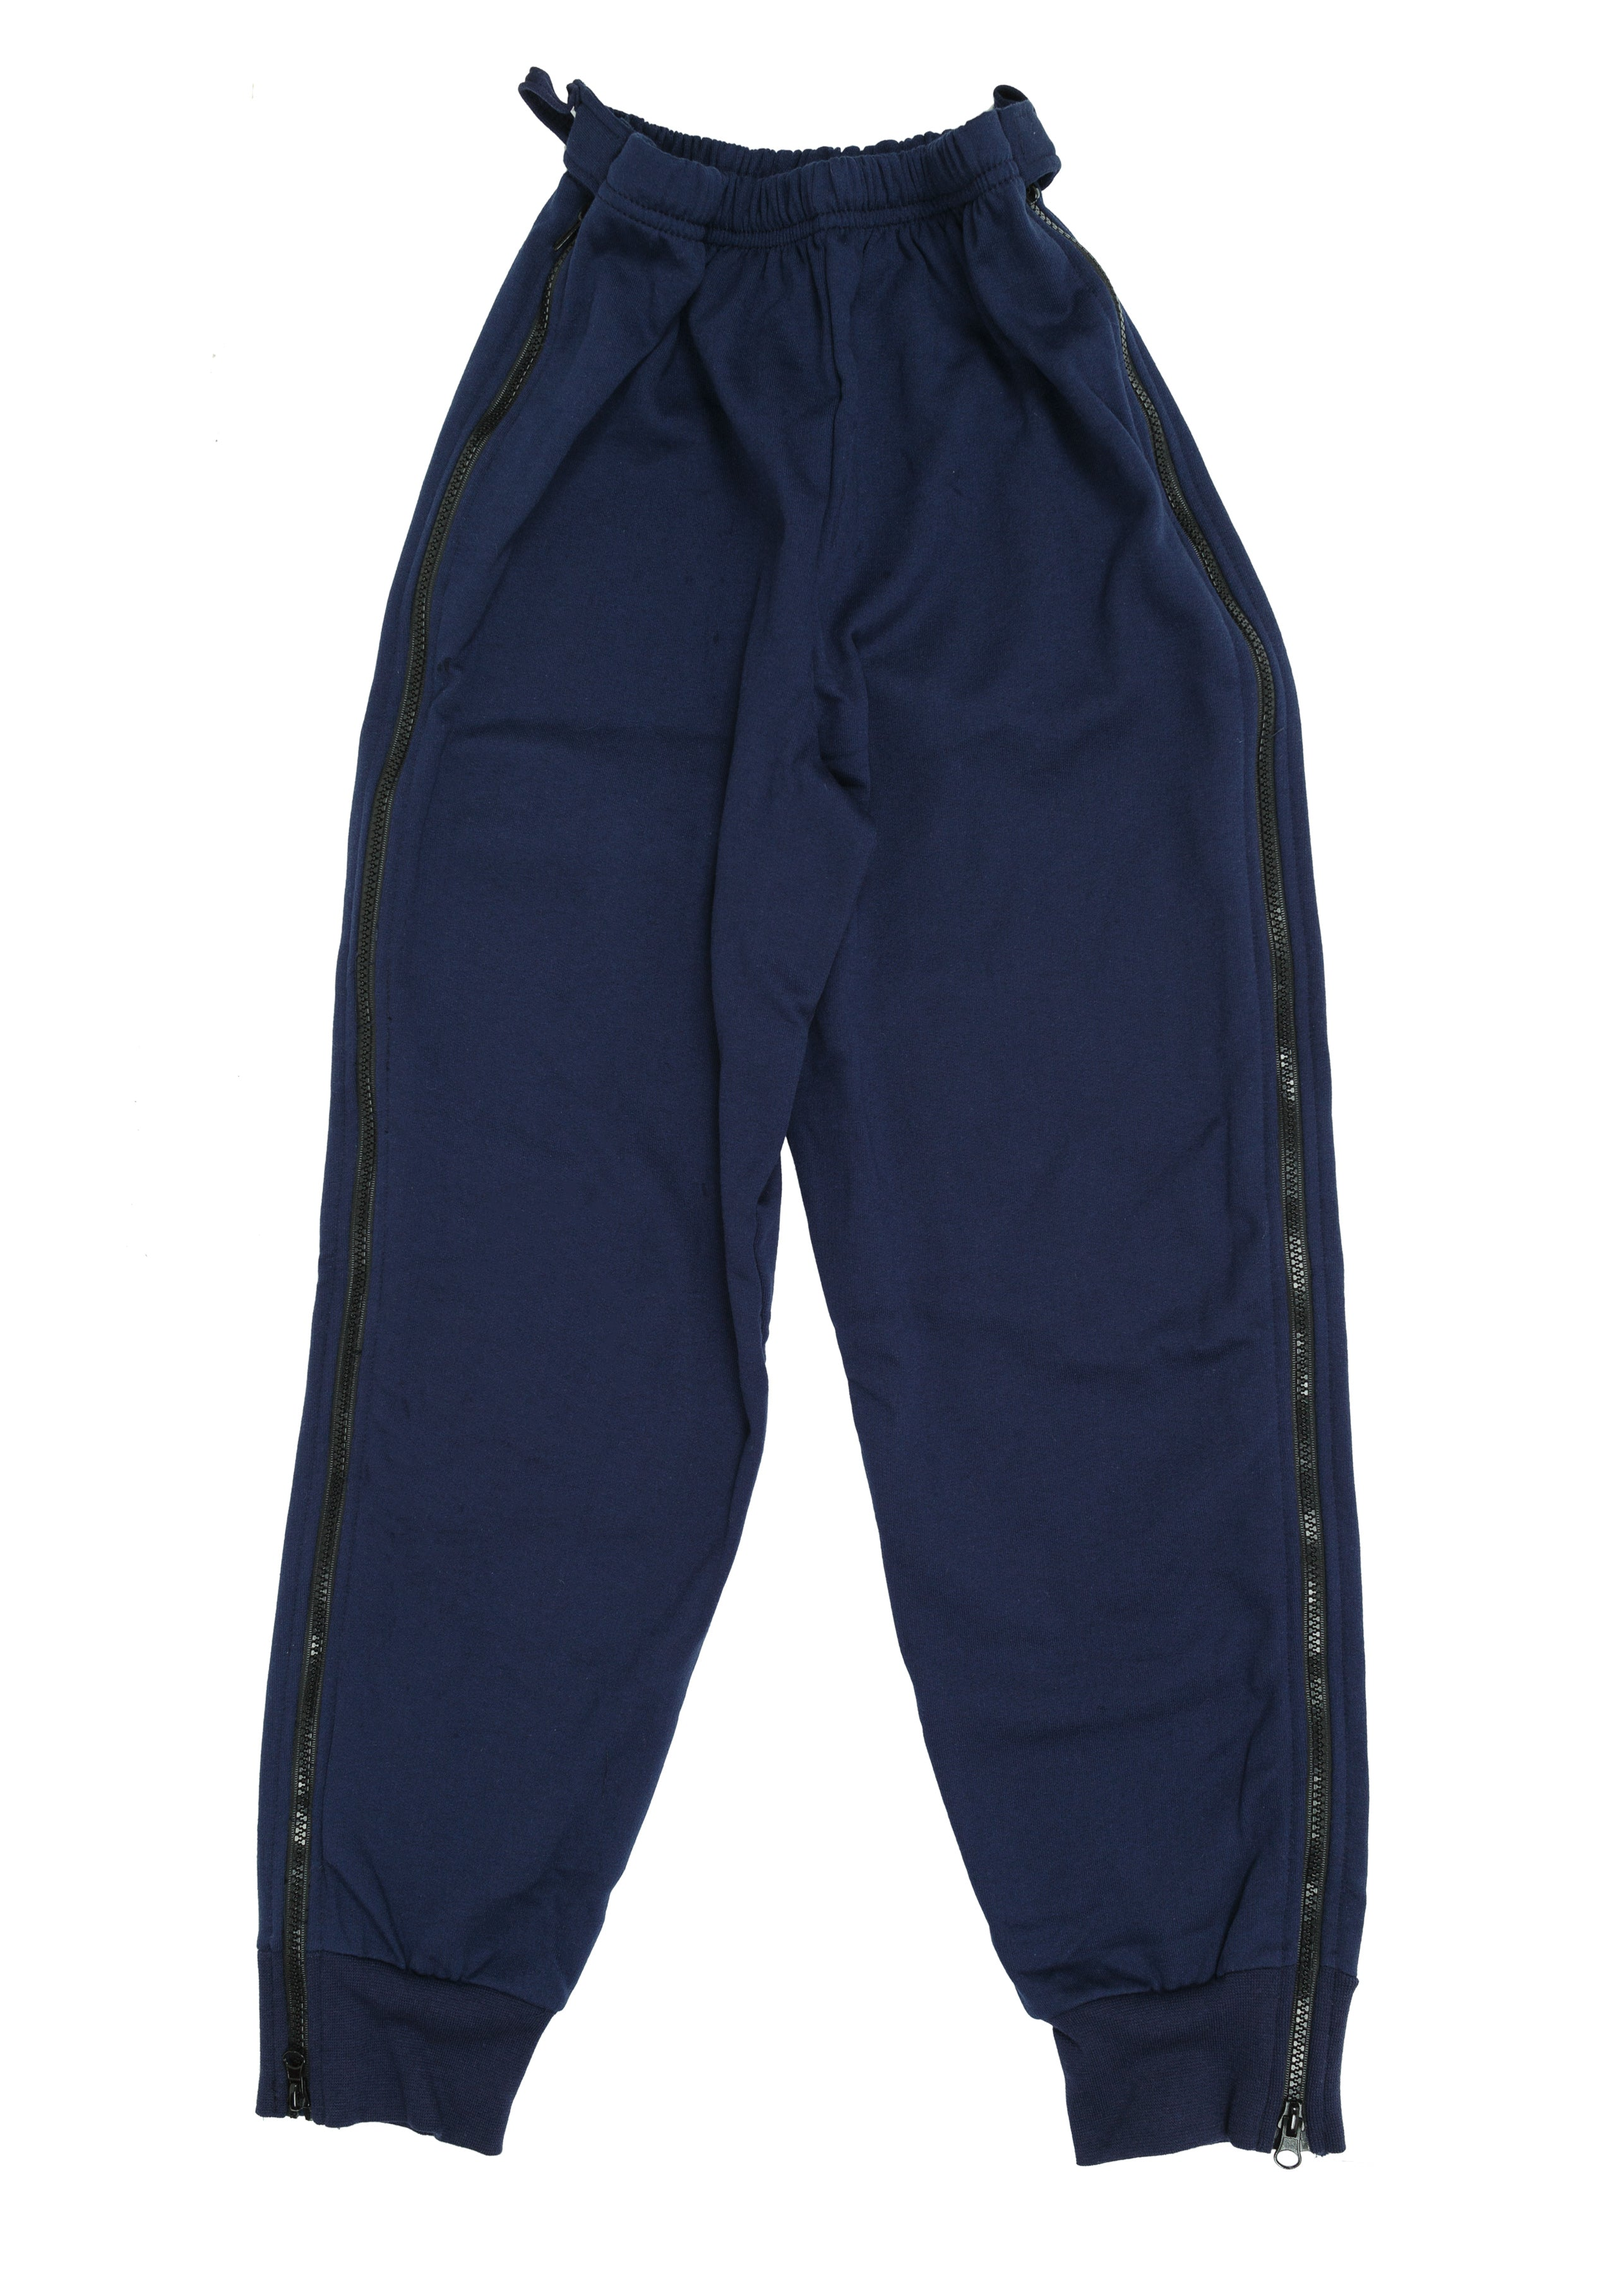 Children's Fleece Pants